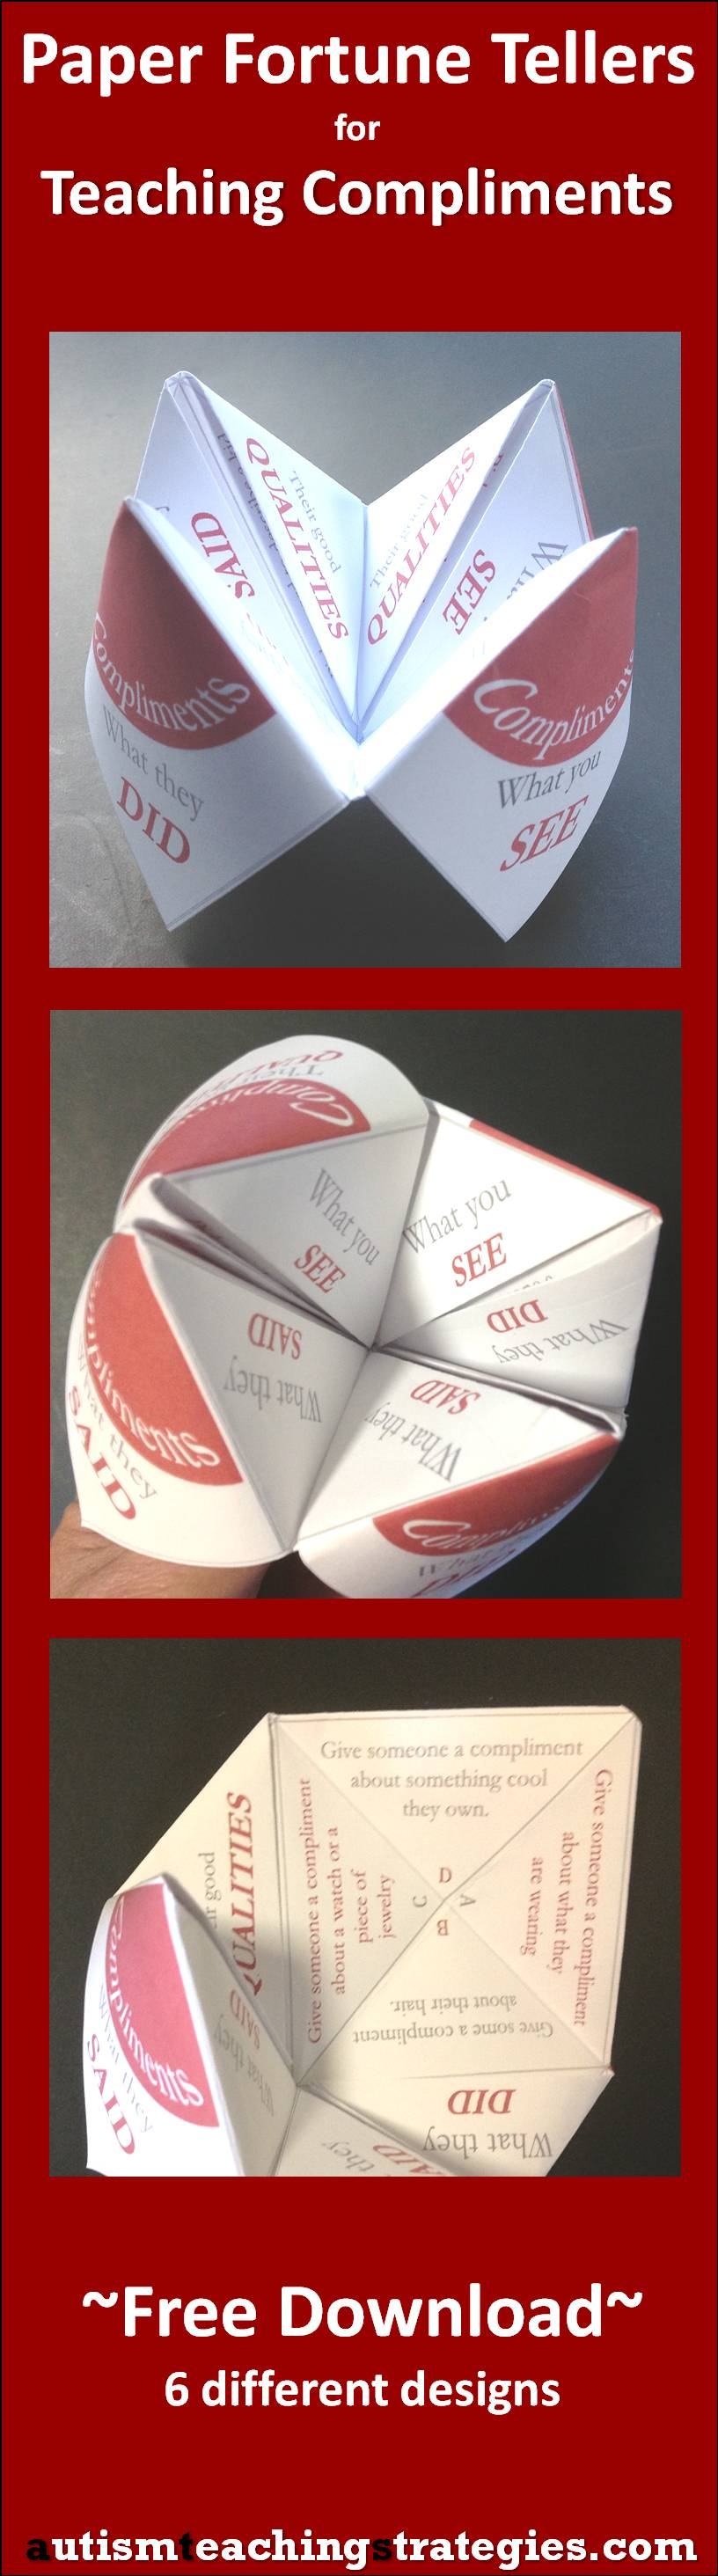 essay on fortune Iintroduction a basic information fortune-telling has been practiced for millennia humans have always yearned to know what the future has in store for.